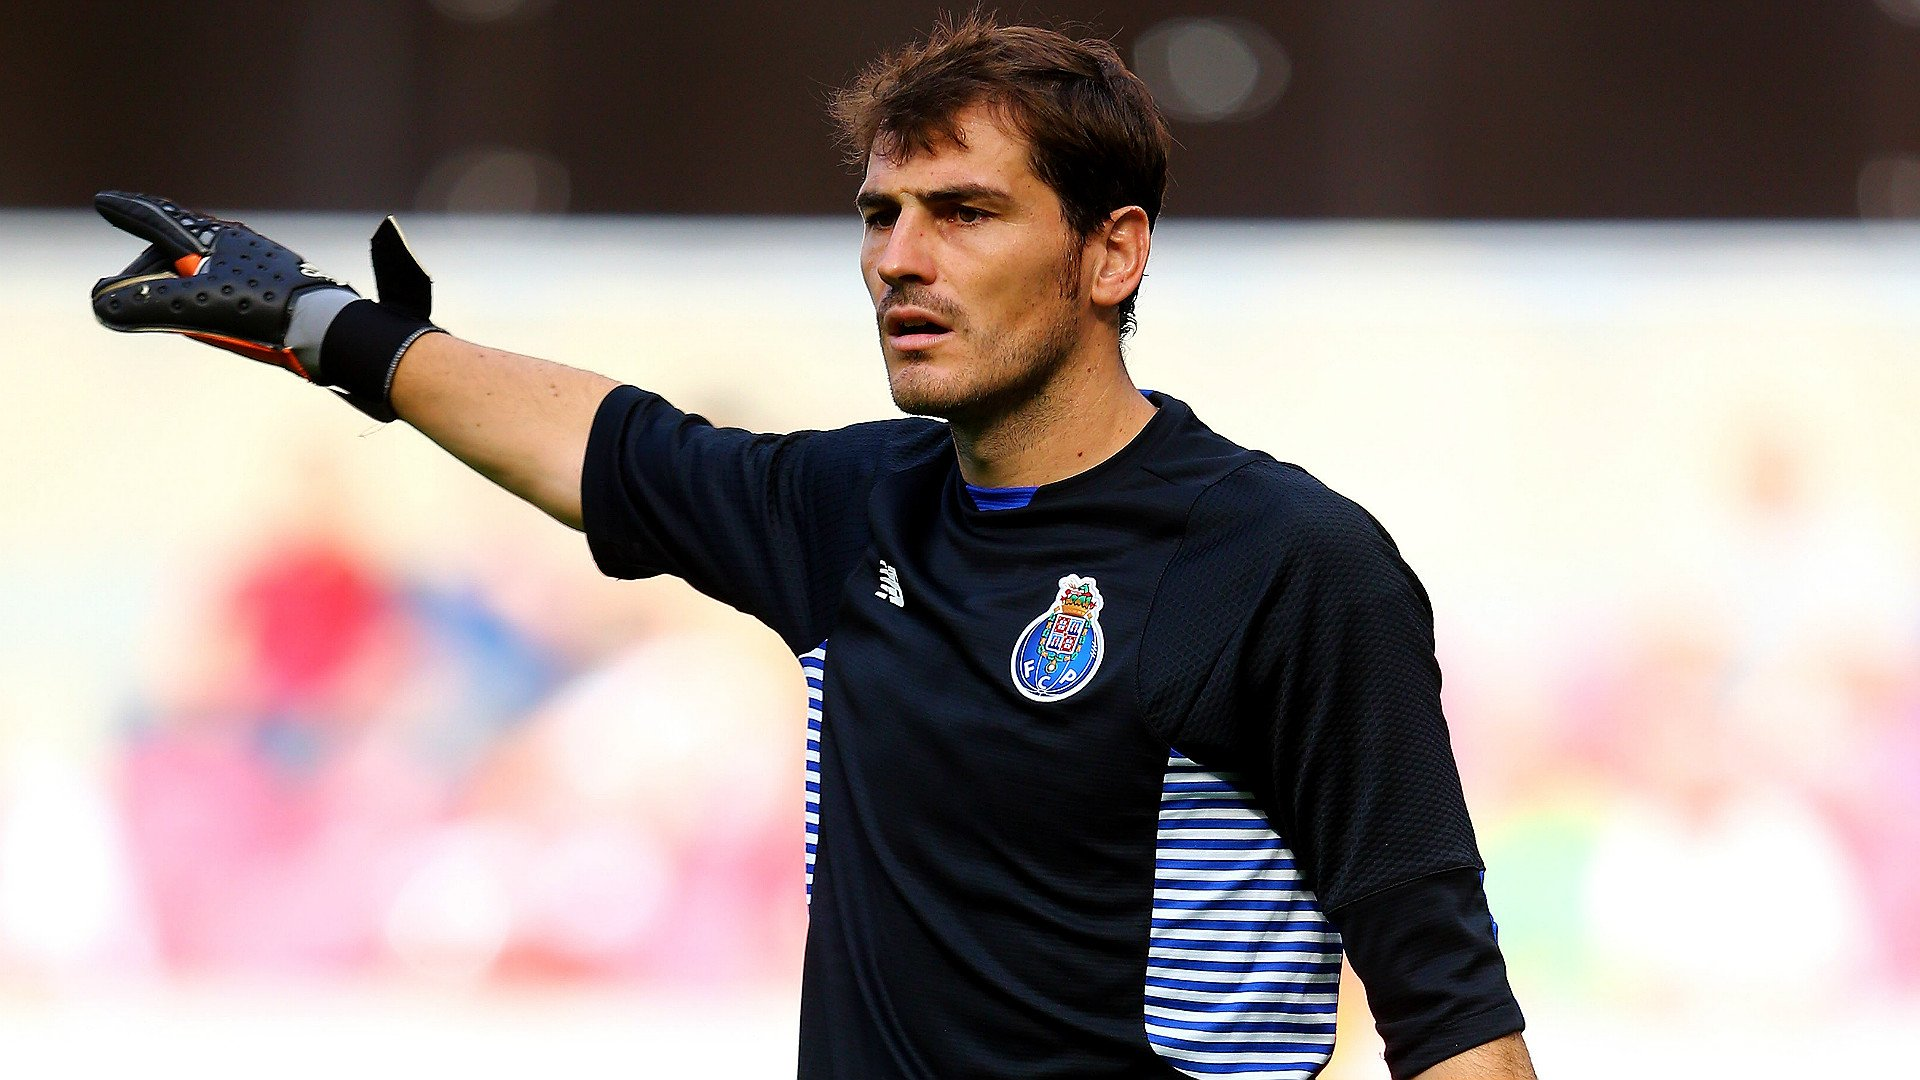 iker casillas fc porto valencia mejores porteros de todos los tiempos - The Best Goalkeepers of all Time | Ertheo Sports Programs